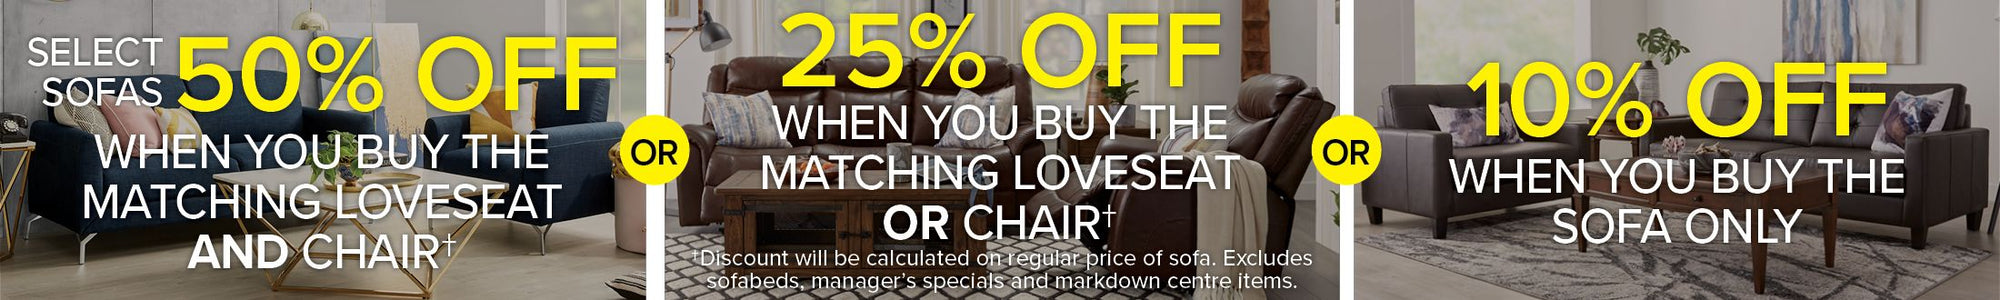 Select Sofas 50% Off When you buy the matching loveseat and chair. 25% Off When you buy the matching loveseat or chair. 10% off when you buy the sofa only. Discount will be calculated on regular price of sofa. Excludes sofabeds, manager's specials and markdown centre items.